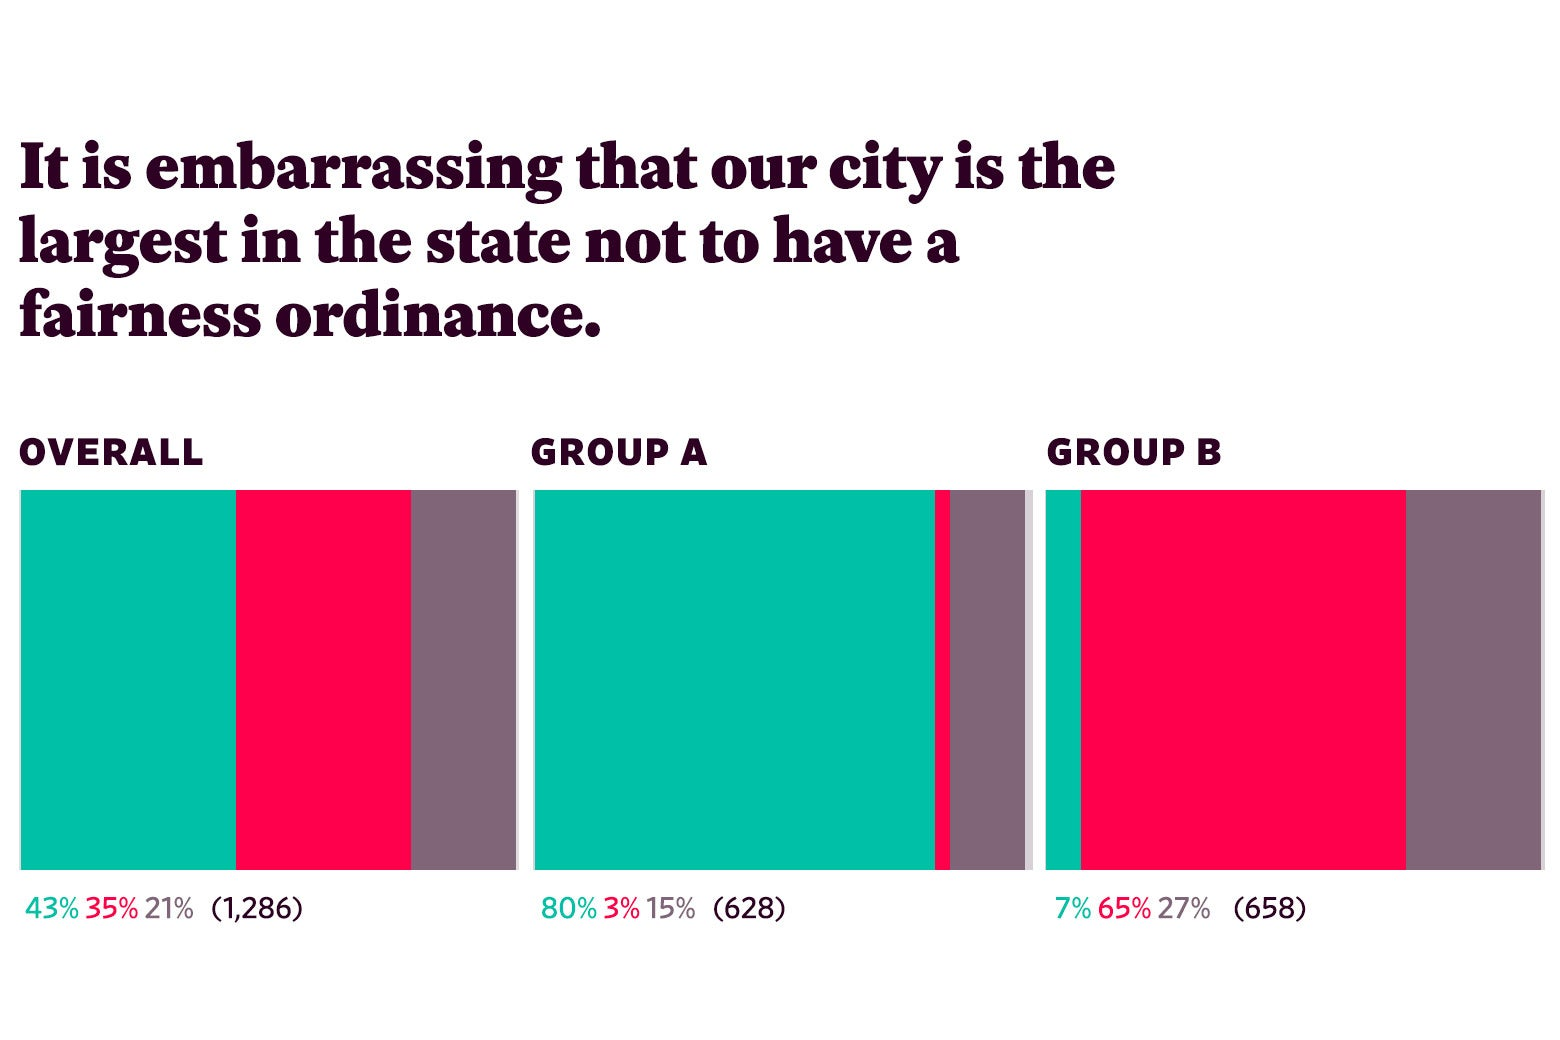 """Responses to """"It is embarrassing that our city is the largest in the state not to have a fairness ordinance."""""""